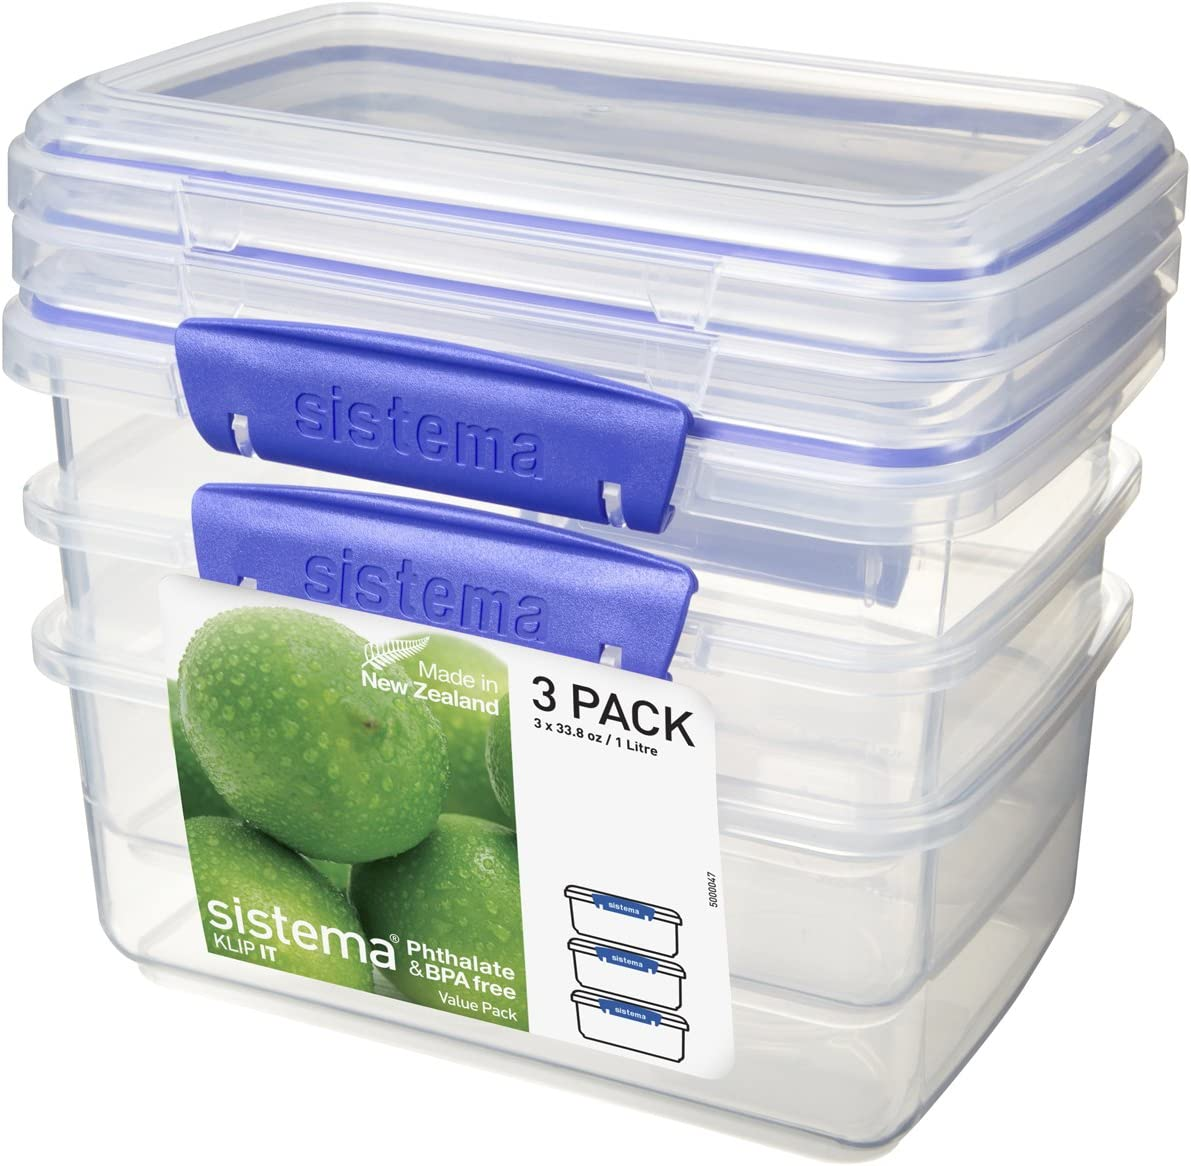 Sistema KLIP IT Rectangular Collection Food Storage Container, 33.8 oz./1.0 L, Clear/Blue, 3 Count